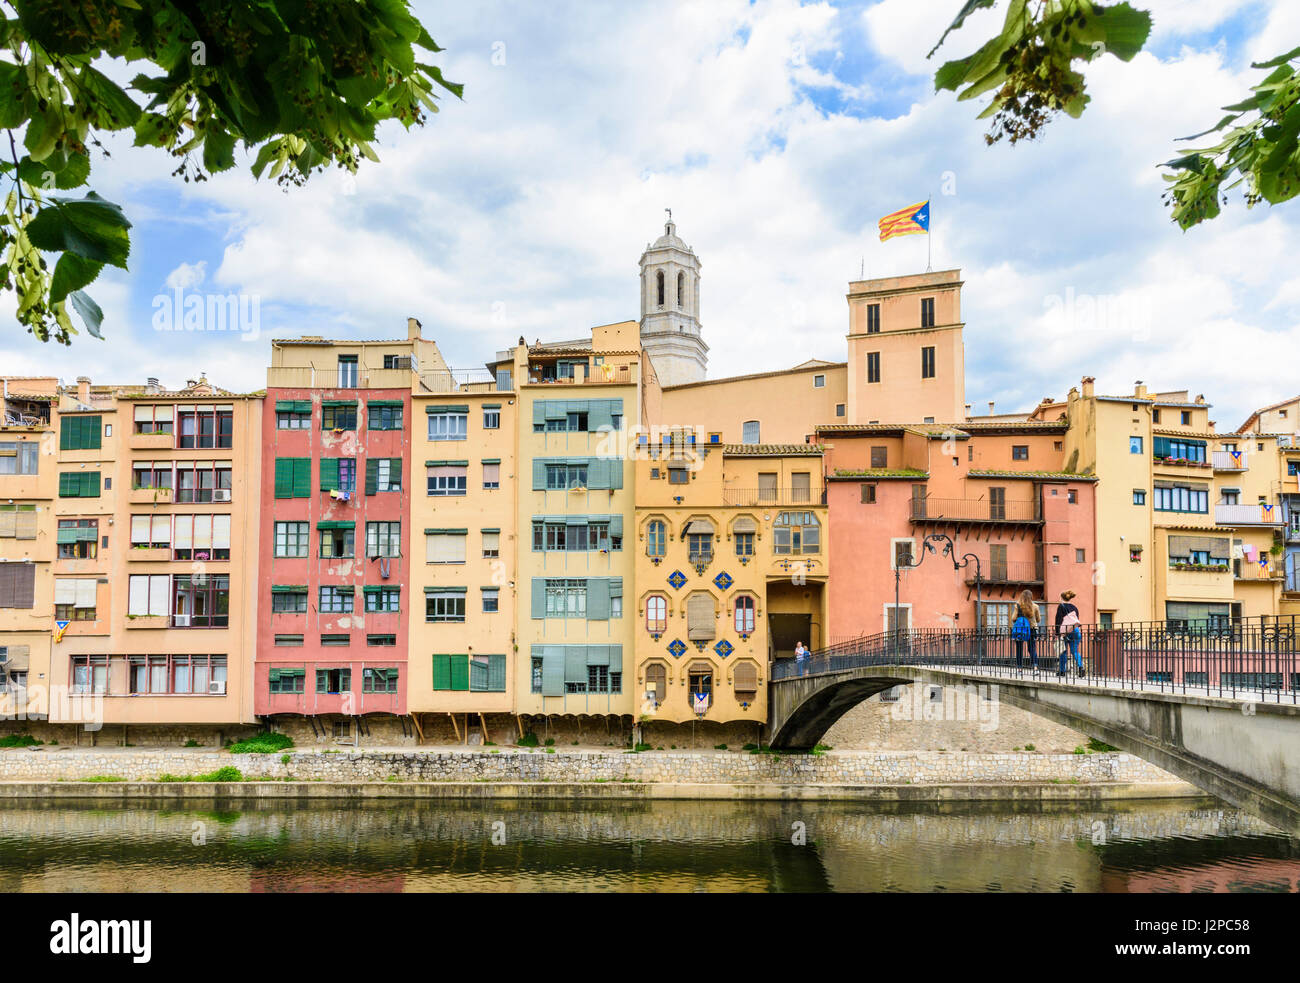 People walking on Pont d'en Gómez bridge over the River Onyar with the cathedral belltower towering over - Stock Image